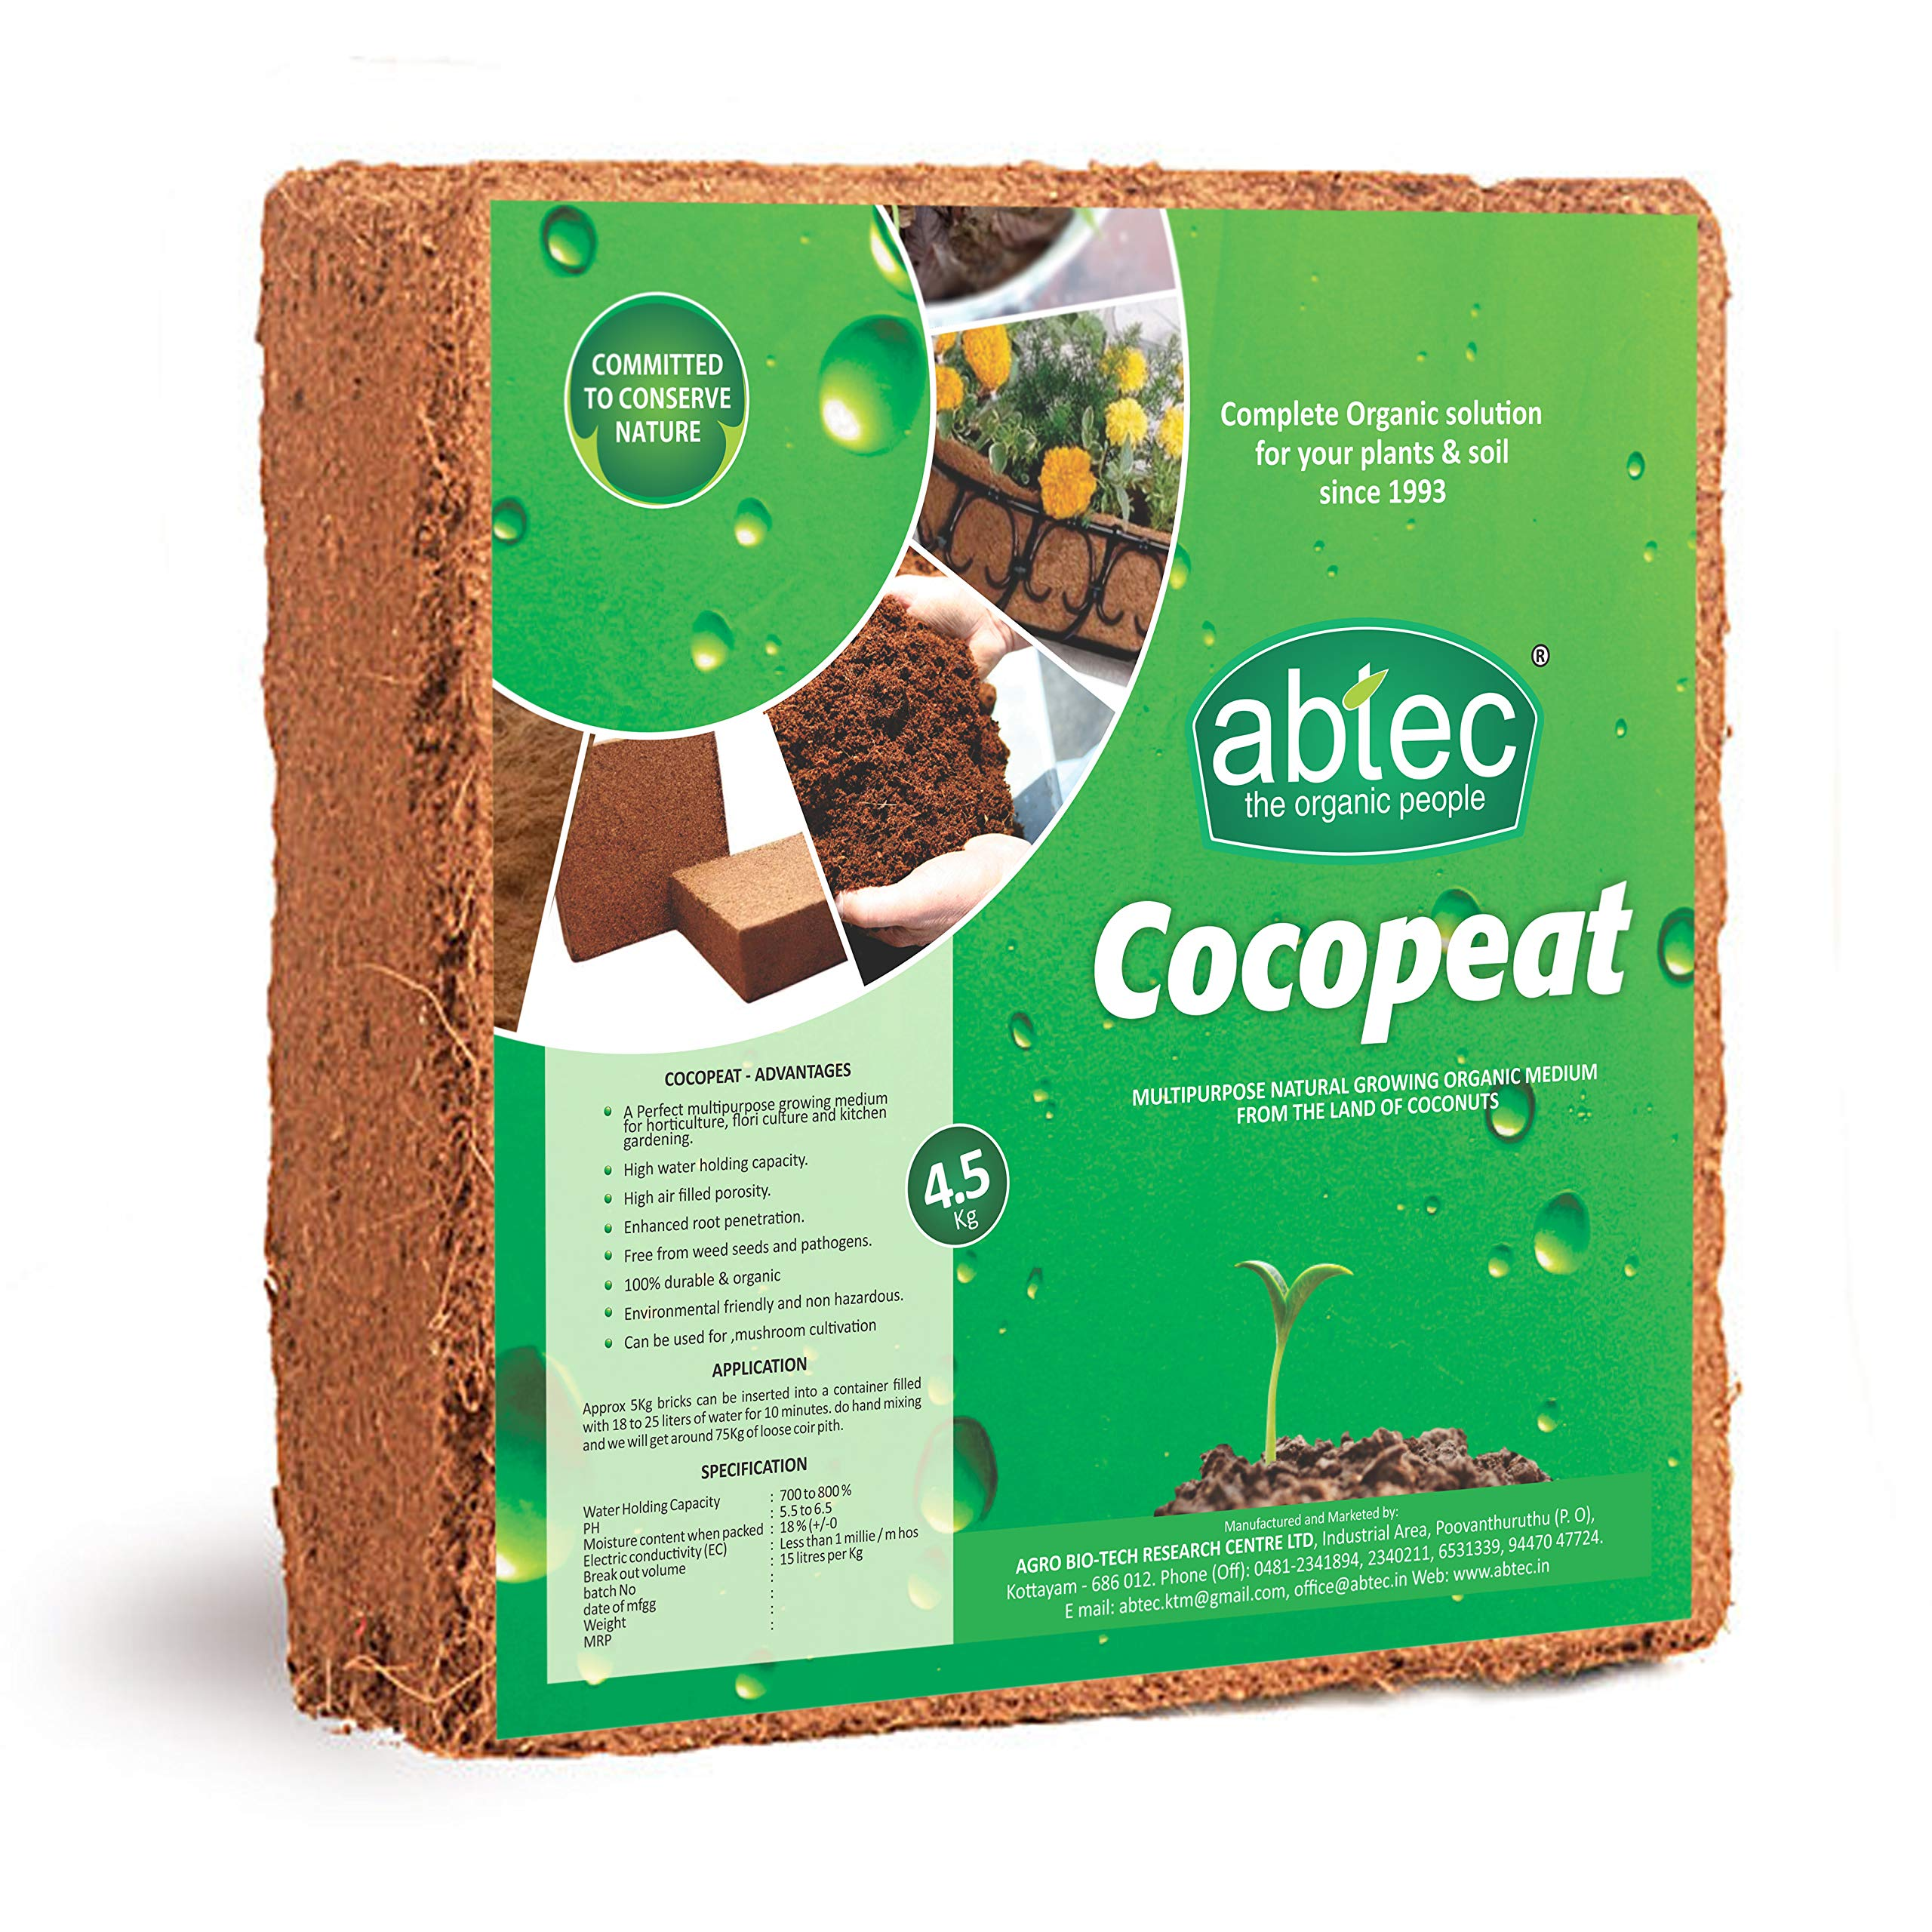 abtec Cocopeat The Best Natural Plant Growing Medium for All Type Plants Expands to 75 L of Coco Peat Powder; 4.5 Kg (Brown; 30 X 30 X 15 Cm) (B01EJC26OM) Amazon Price History, Amazon Price Tracker